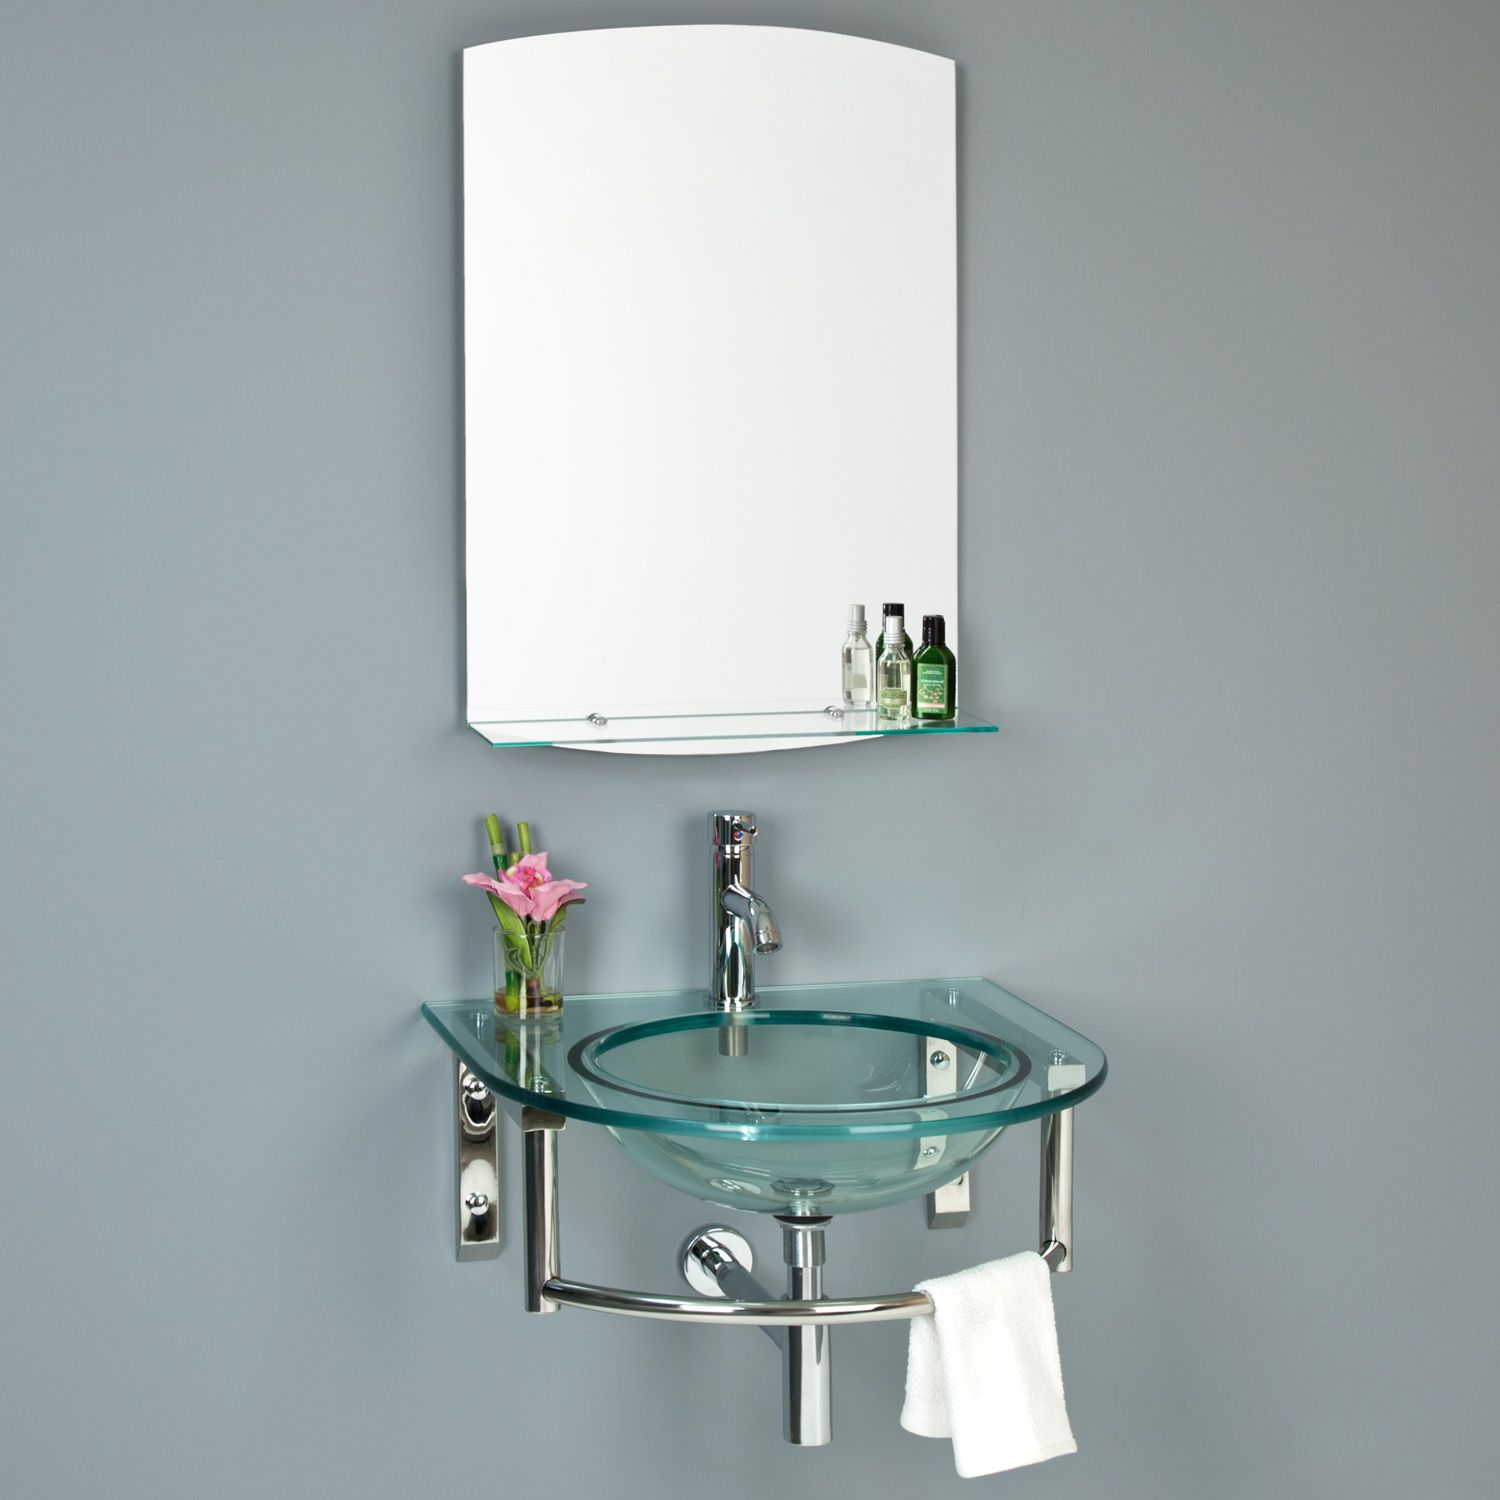 Lowry Wall-Mount Glass Sink with Mirror and Shelf | Wall mount ...